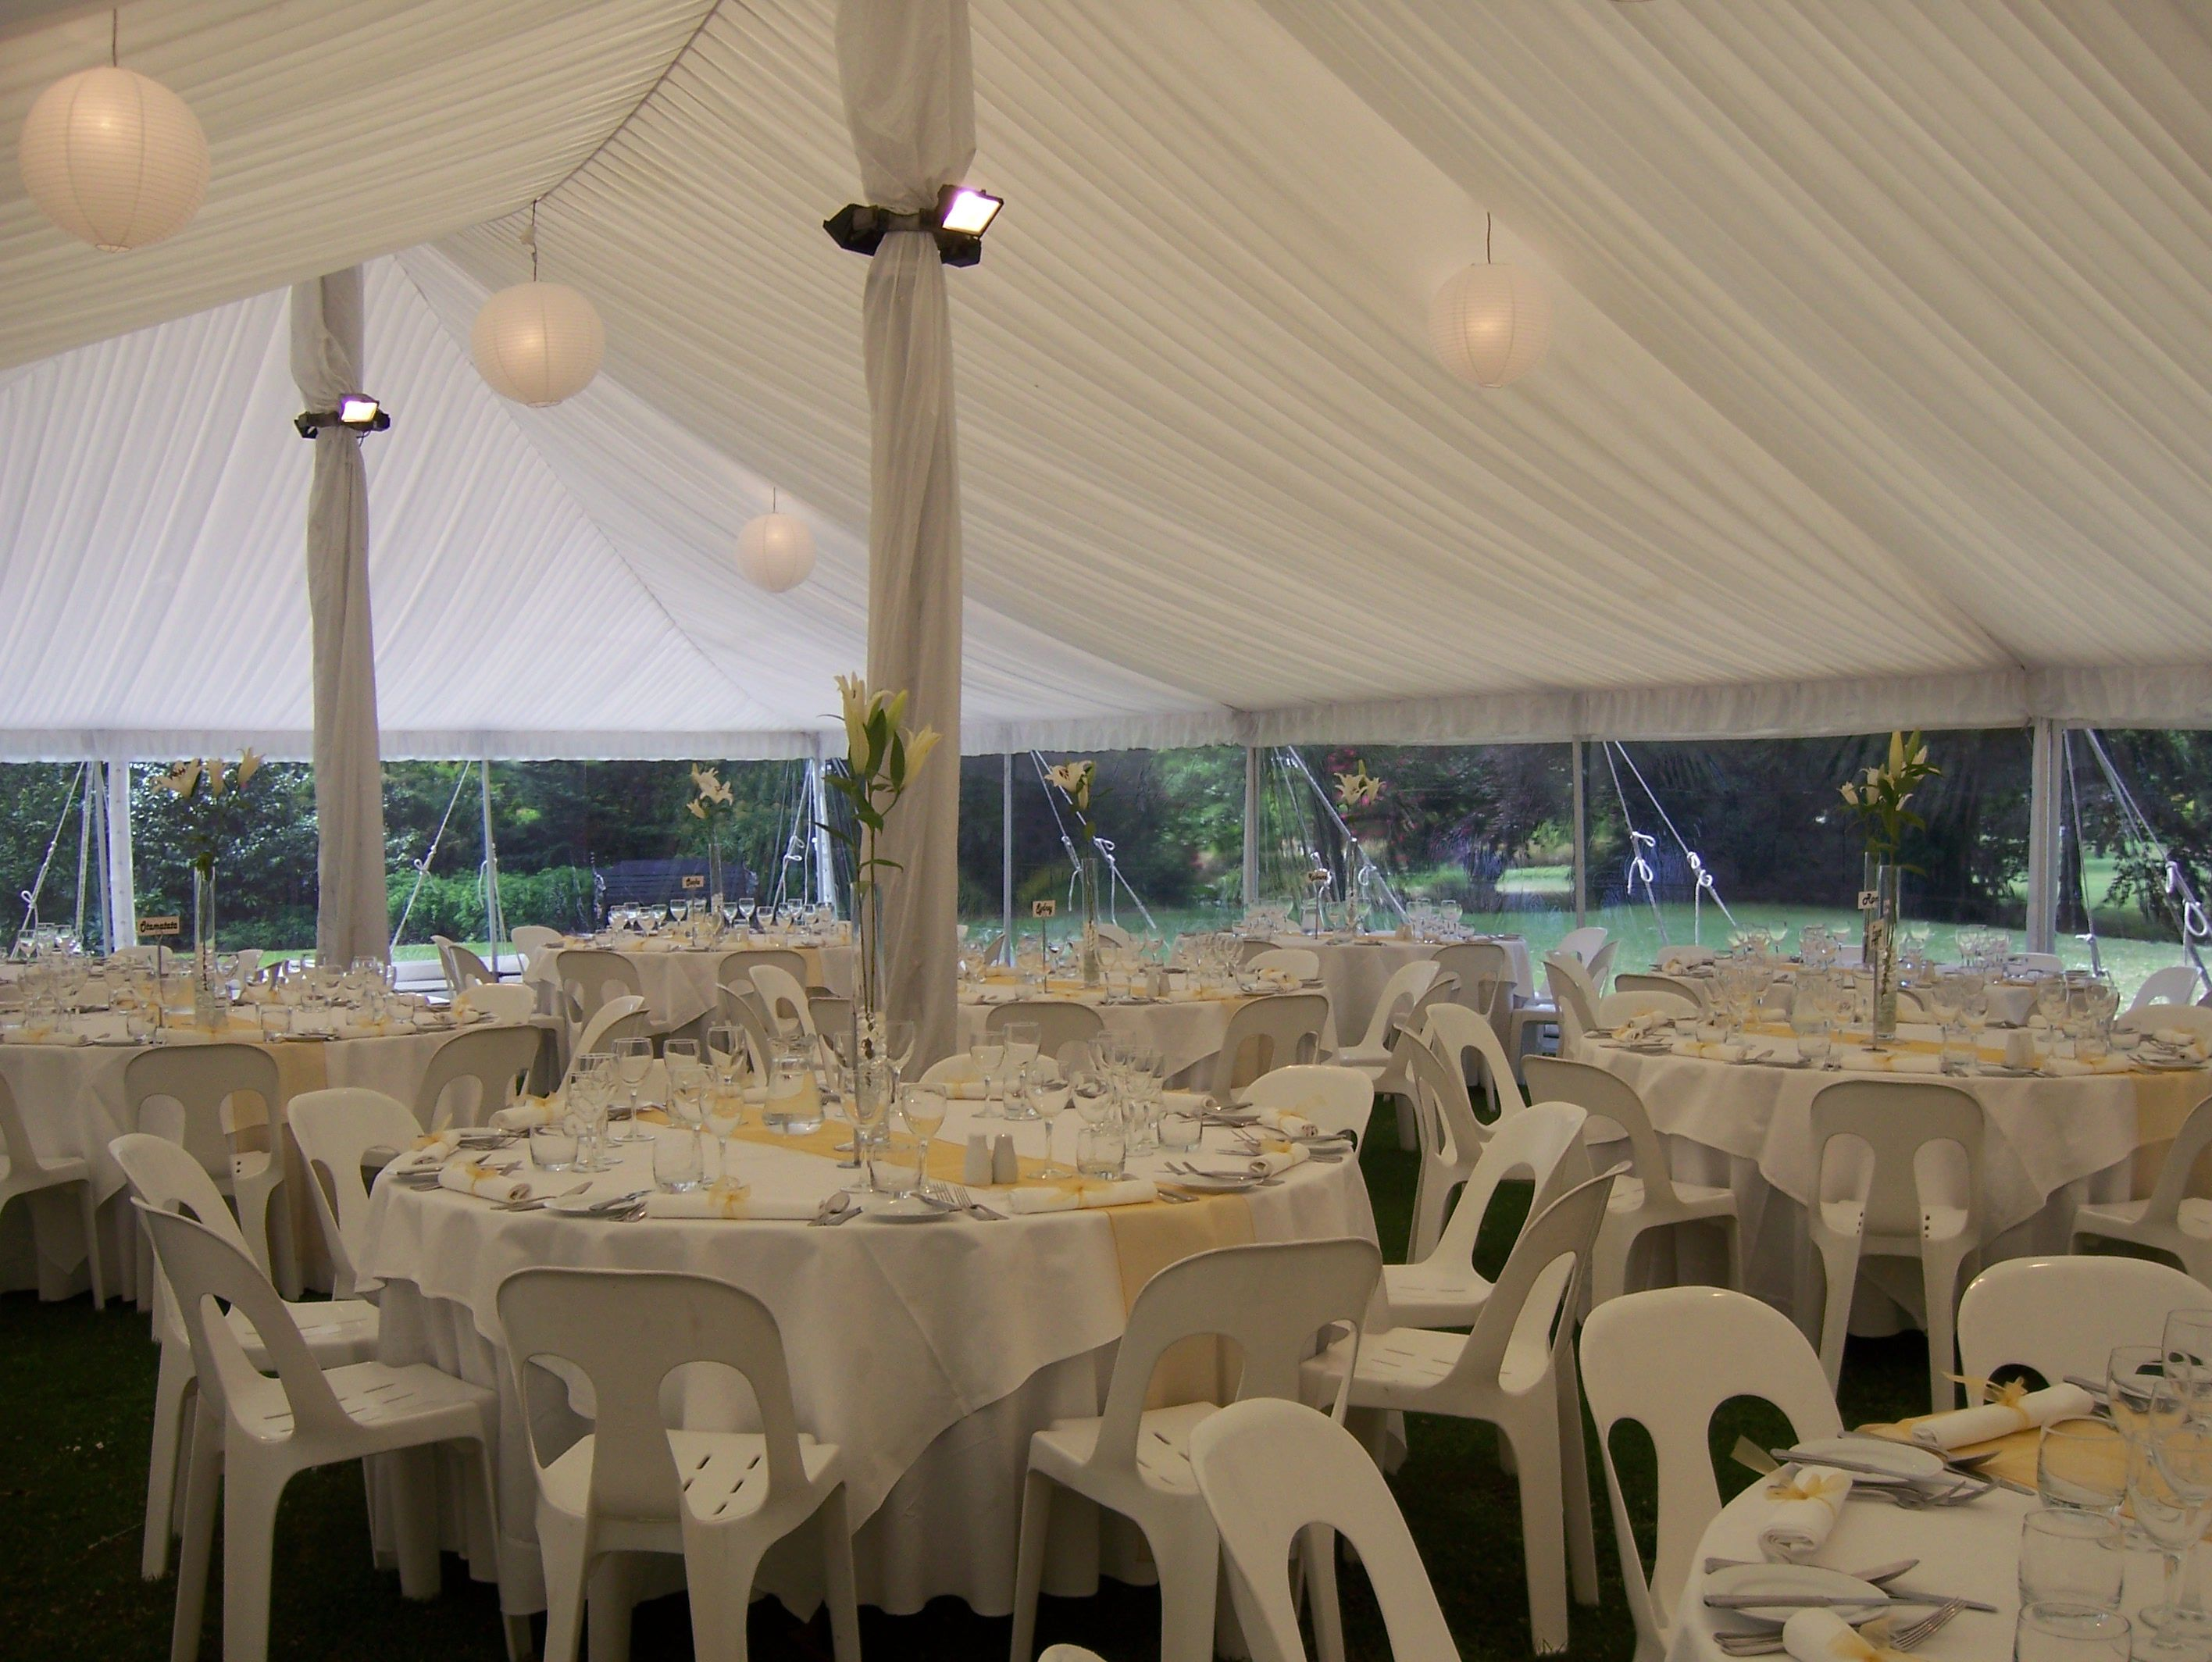 Set inside with Pipee Chairs Marquee Weddings Pinterest